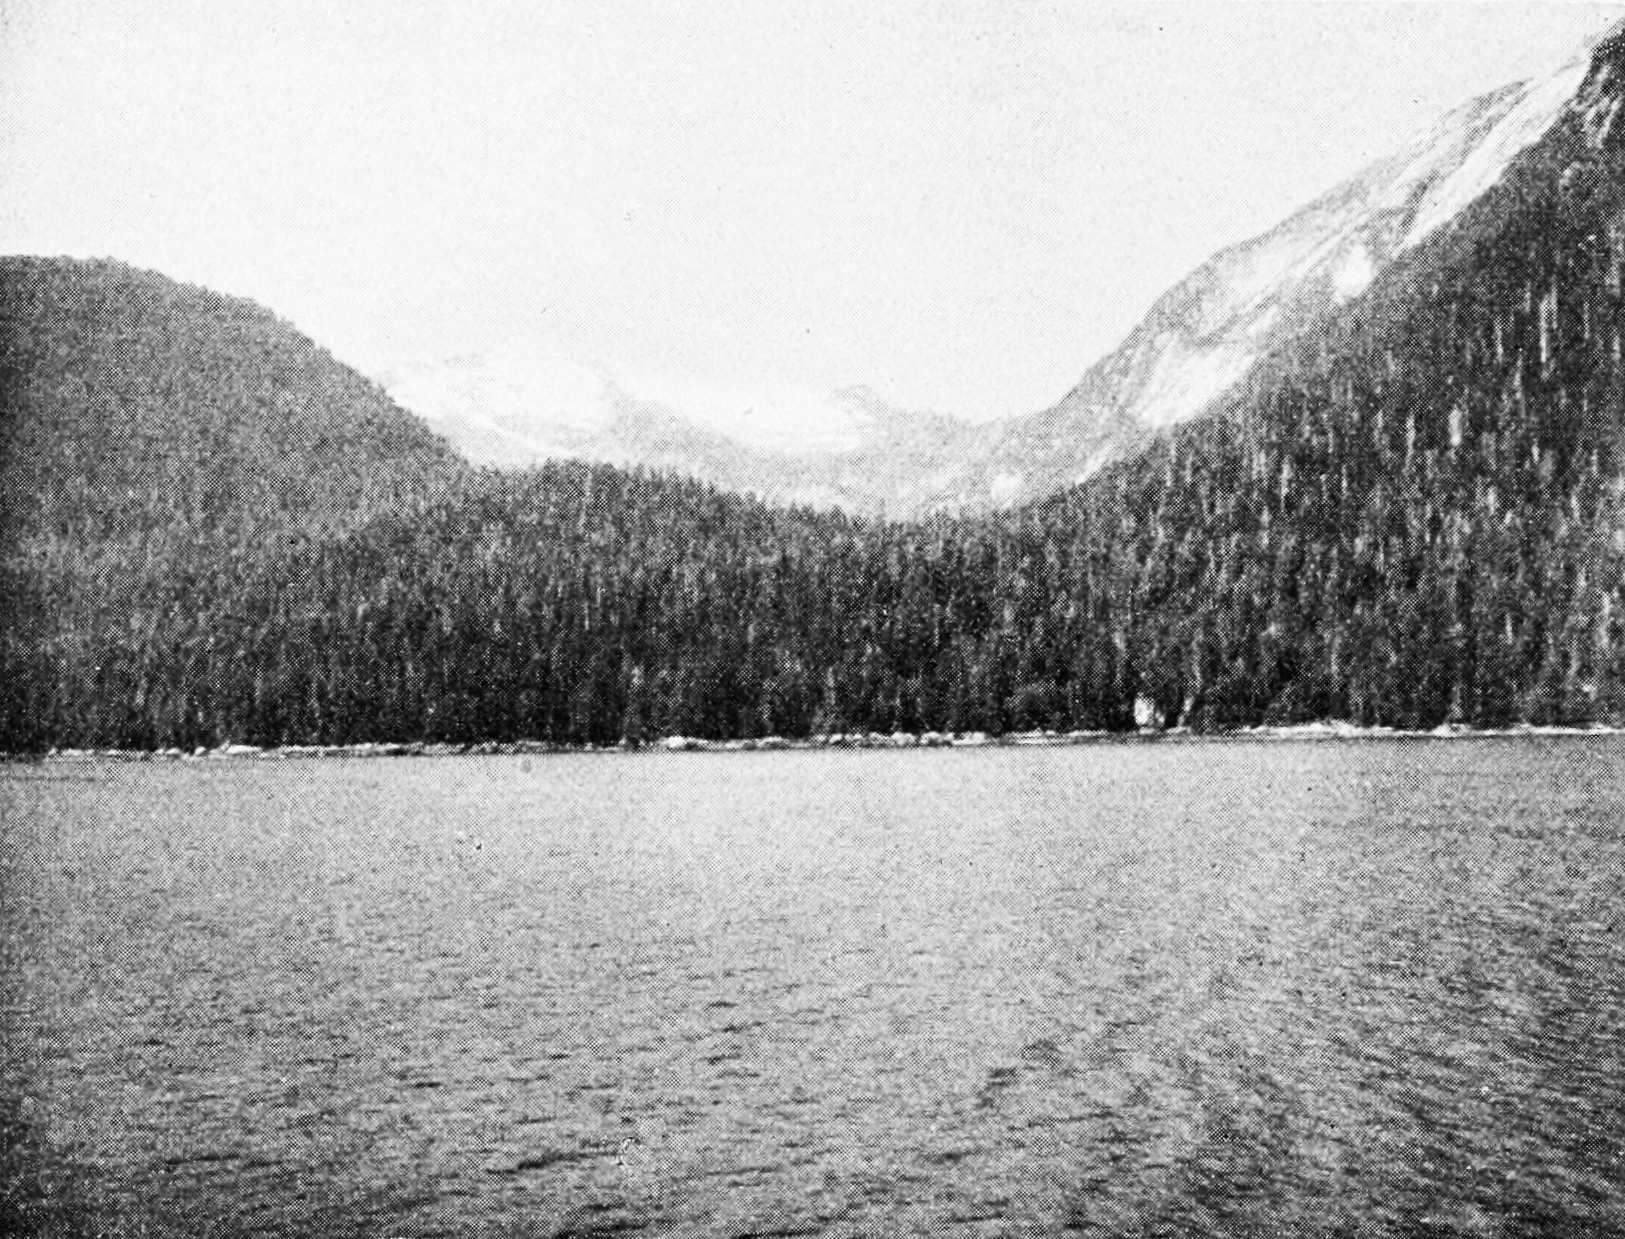 PSM V70 D106 Hanging valley grenville channel inside passage.jpg